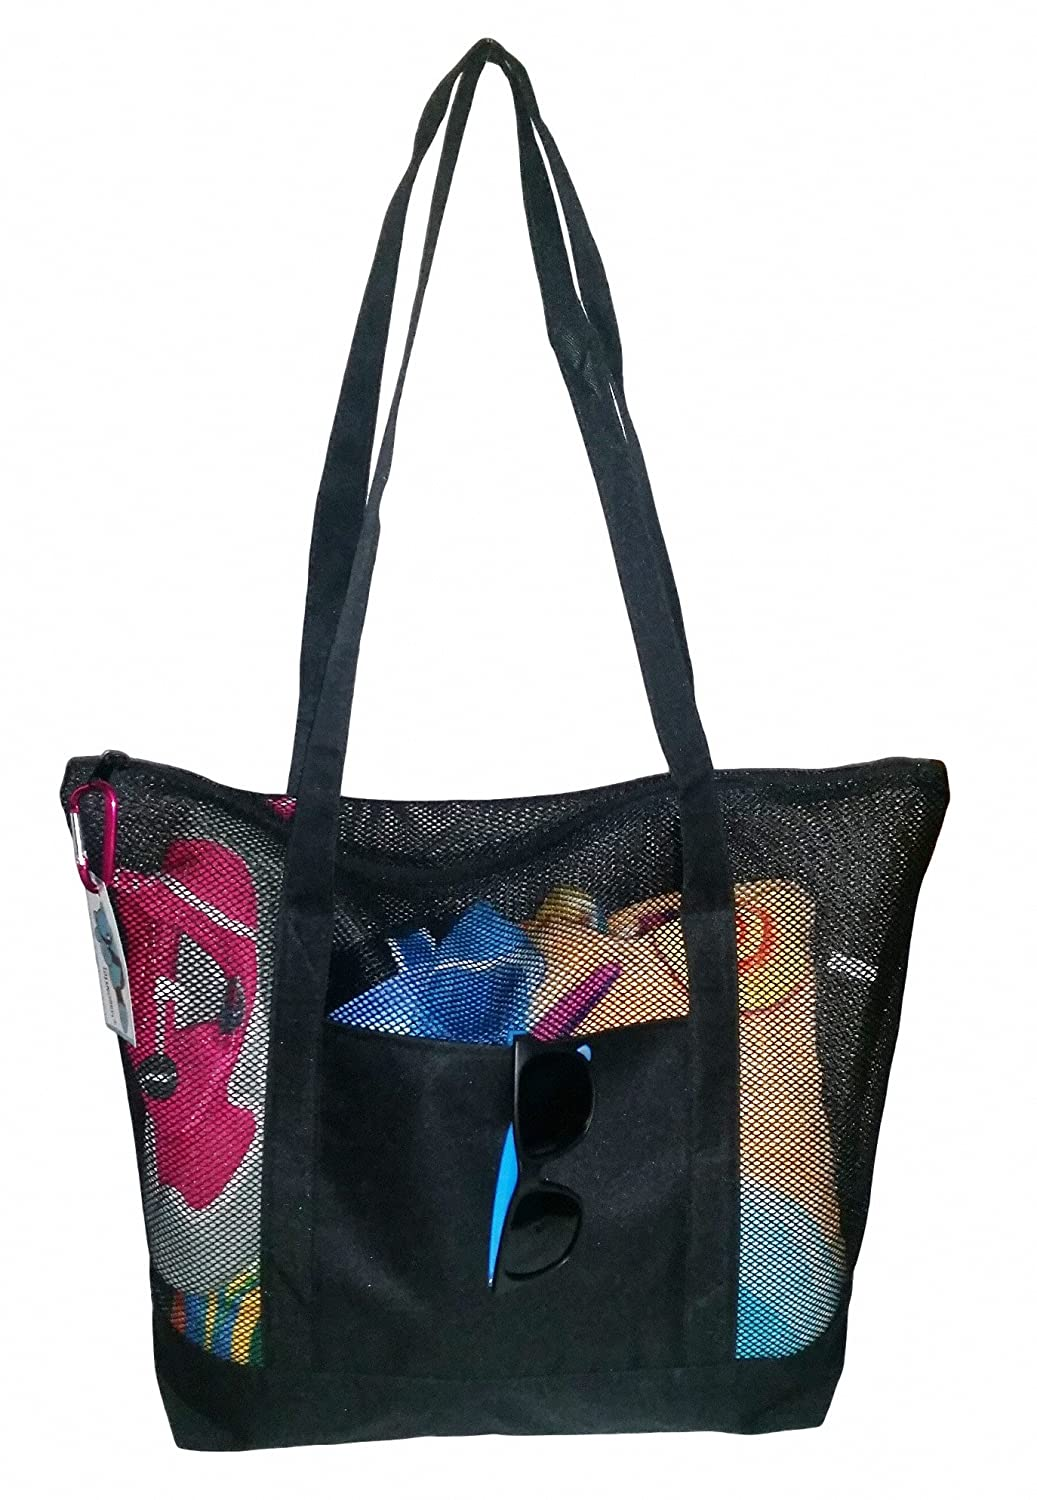 544a168b1 Amazon.com: Mesh Beach Tote Bag Black - Good for the Beach - 20 in X 15 in  X 5 In: Clothing